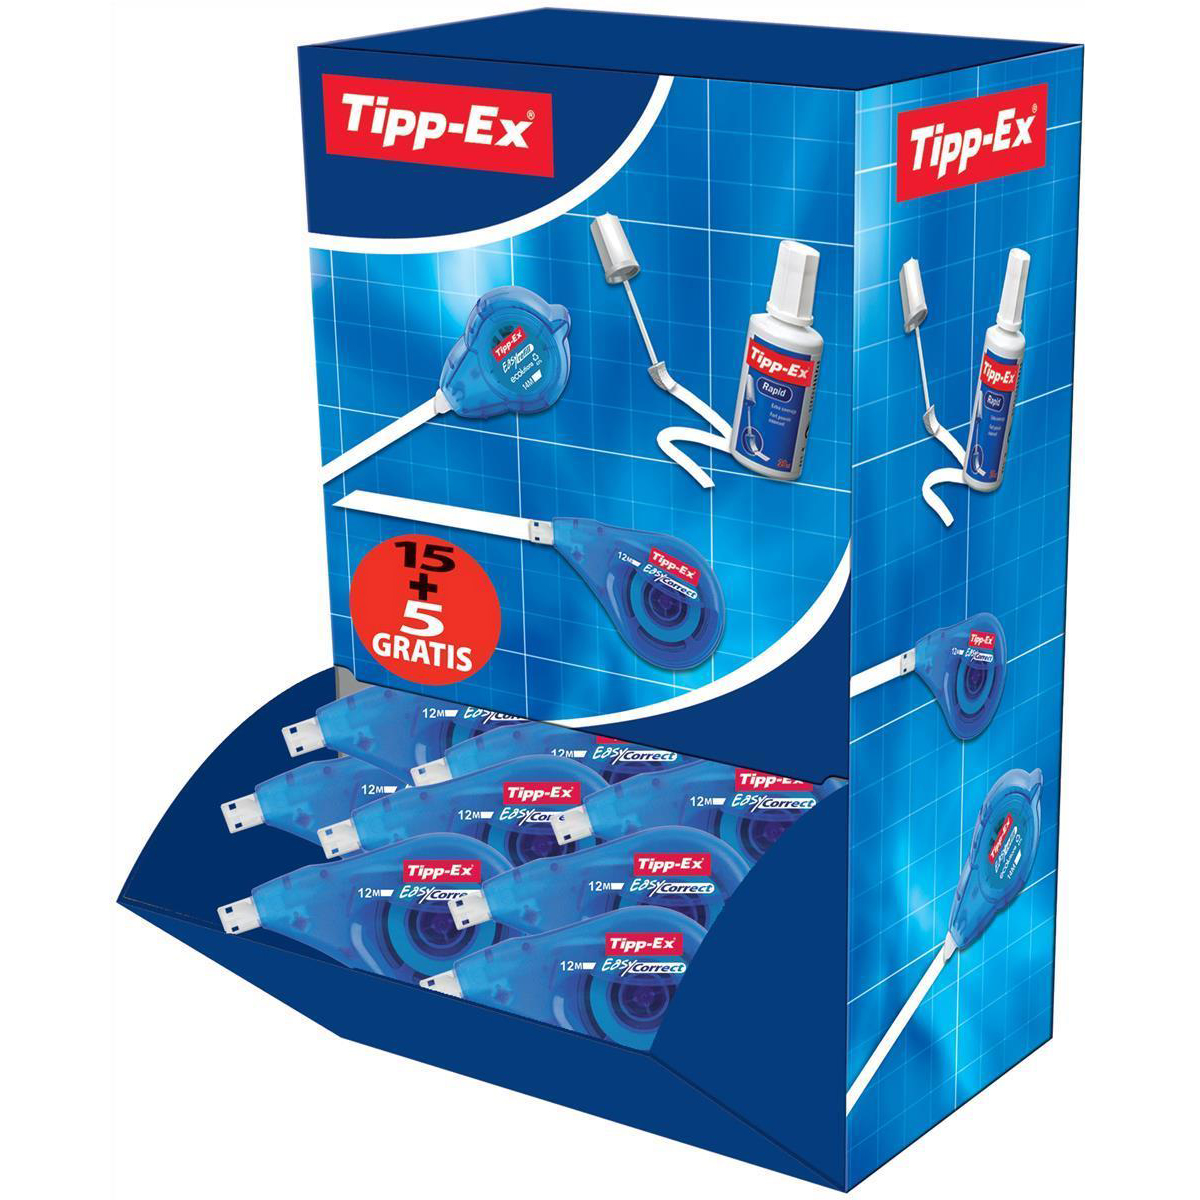 Correction Tape Tipp-Ex Easy-correct Correction Tape Roller 4.2mmx12m Ref 895951 Pack 15 & 5